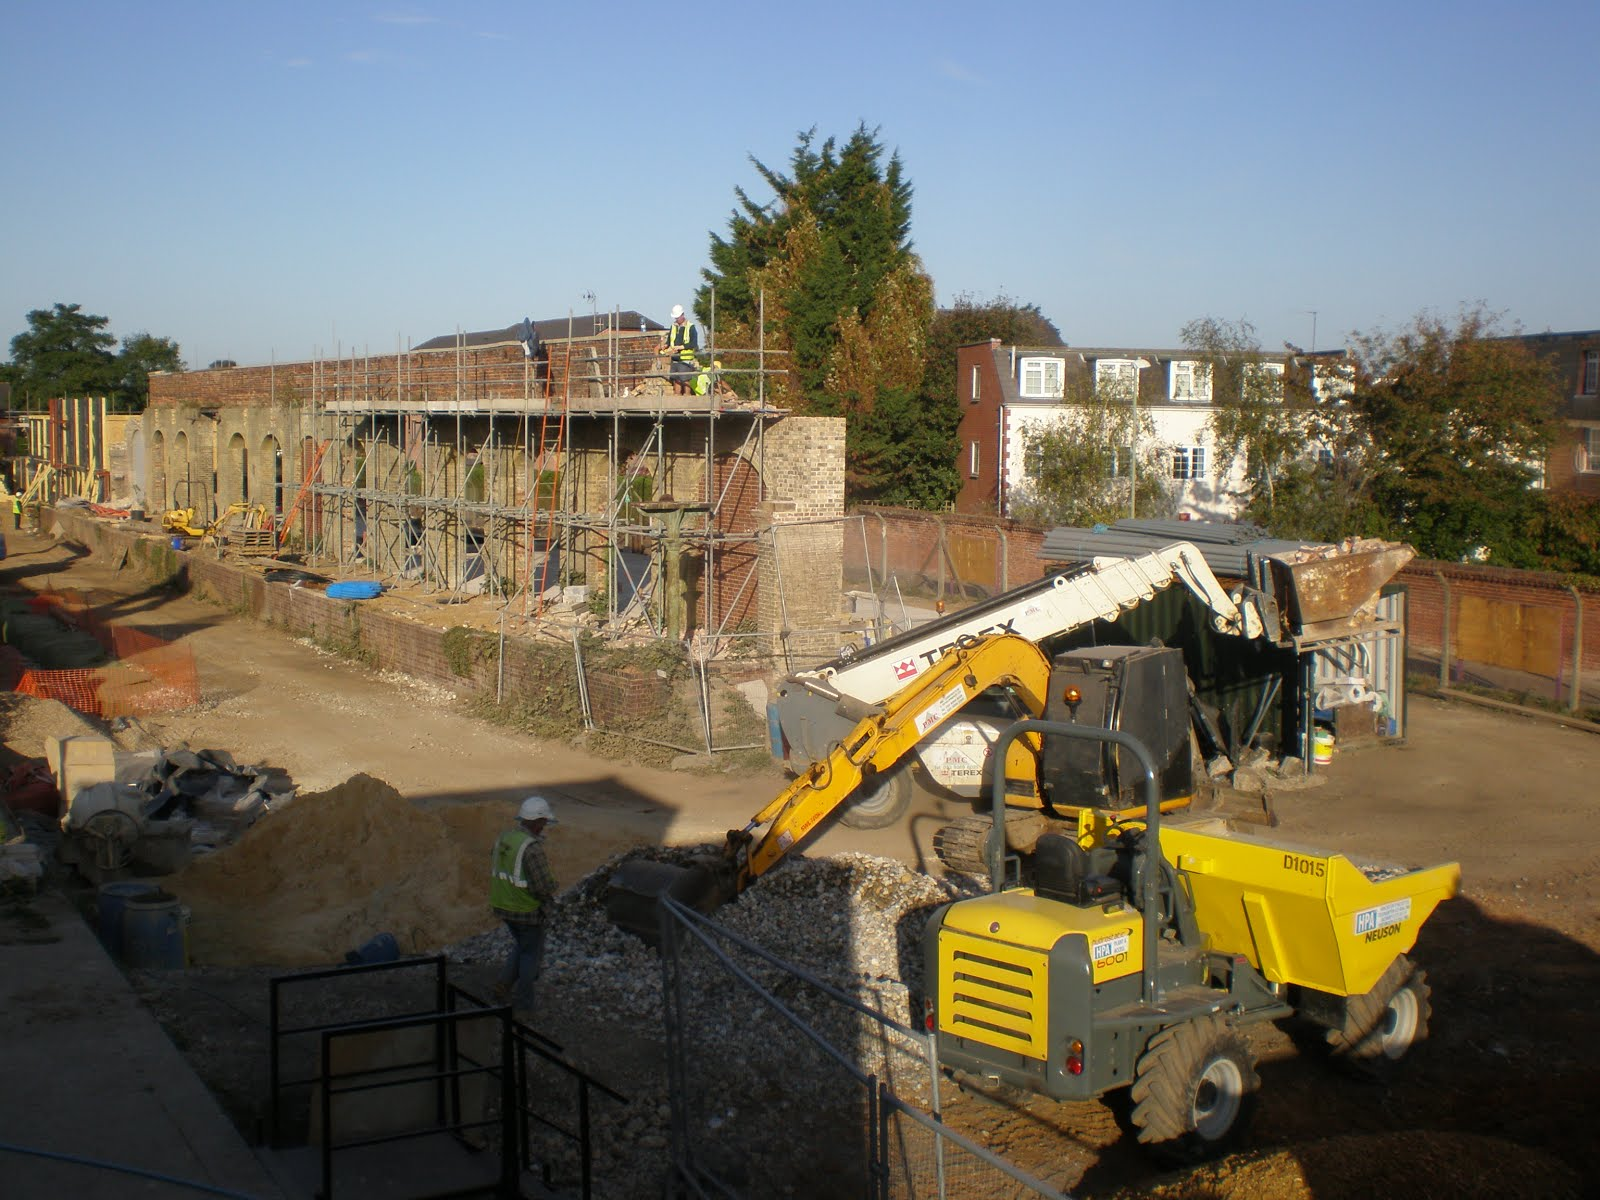 Gosport station during renovation